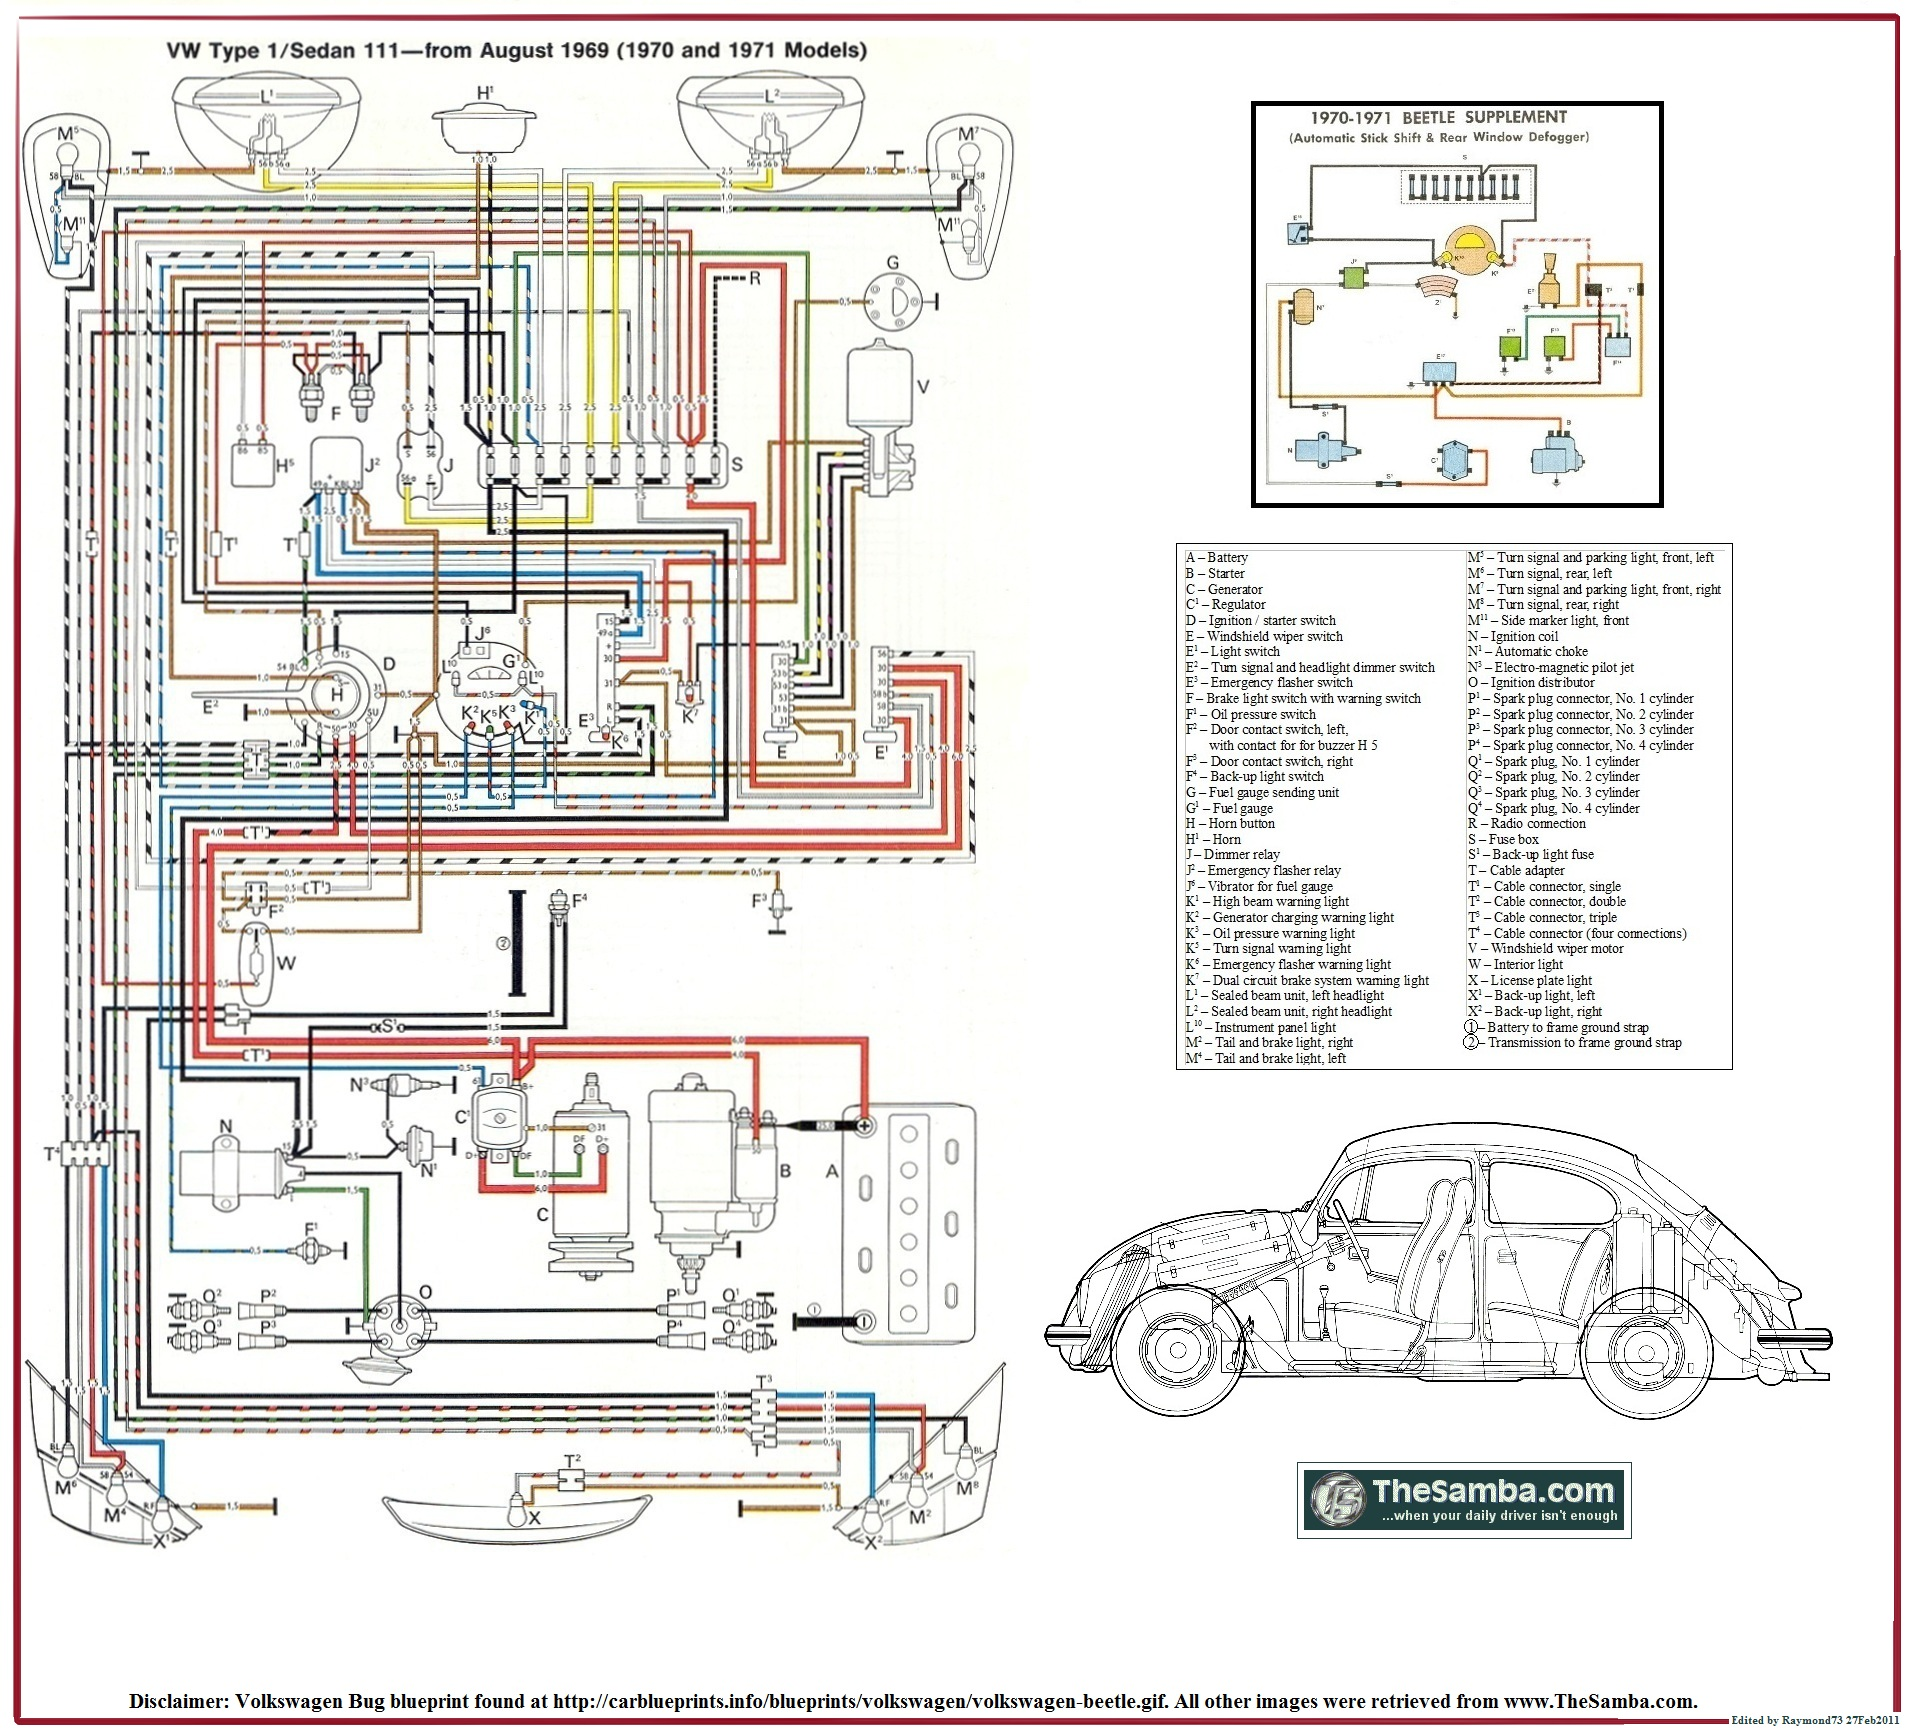 1970_VW_Type_1_Poster vw type 1 wiring diagram 1961 vw type 1 wiring diagram \u2022 wiring 1969 vw squareback wiring diagram at webbmarketing.co